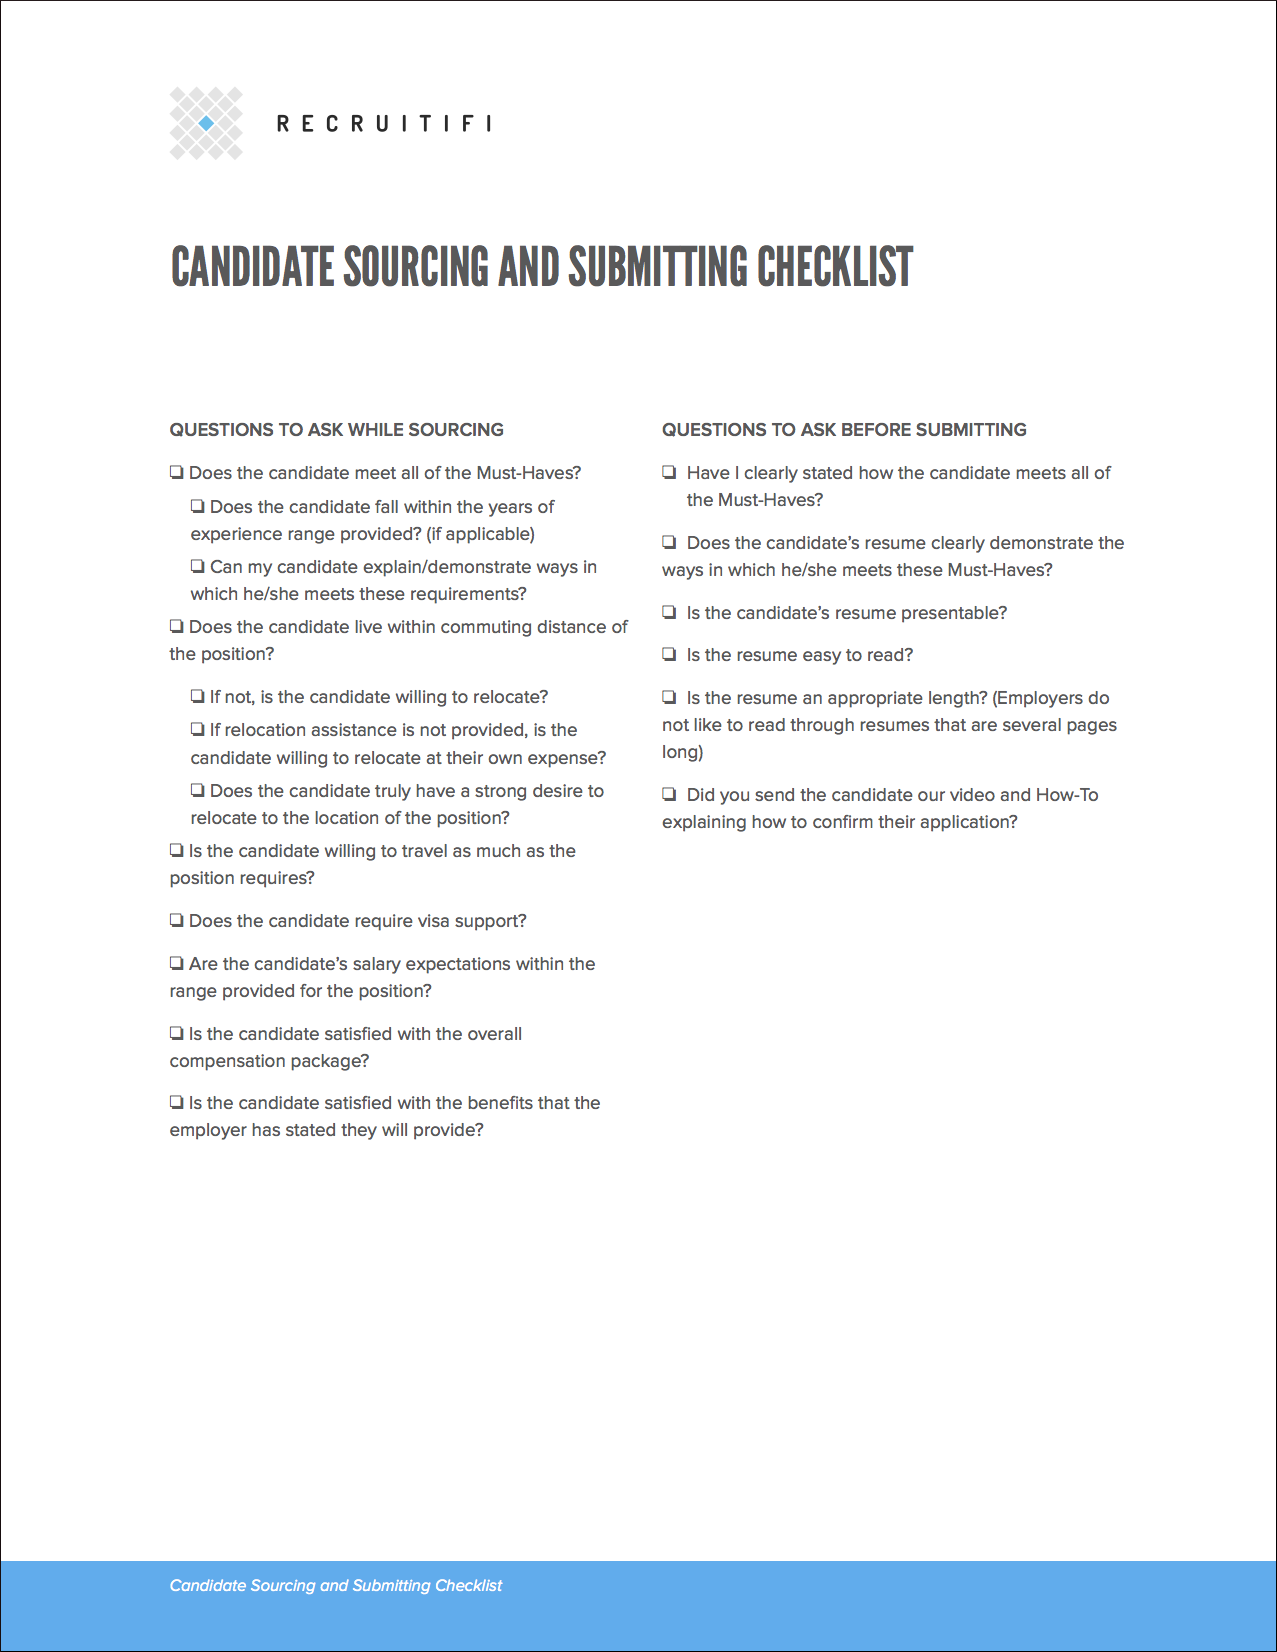 sourcing-checklist.png